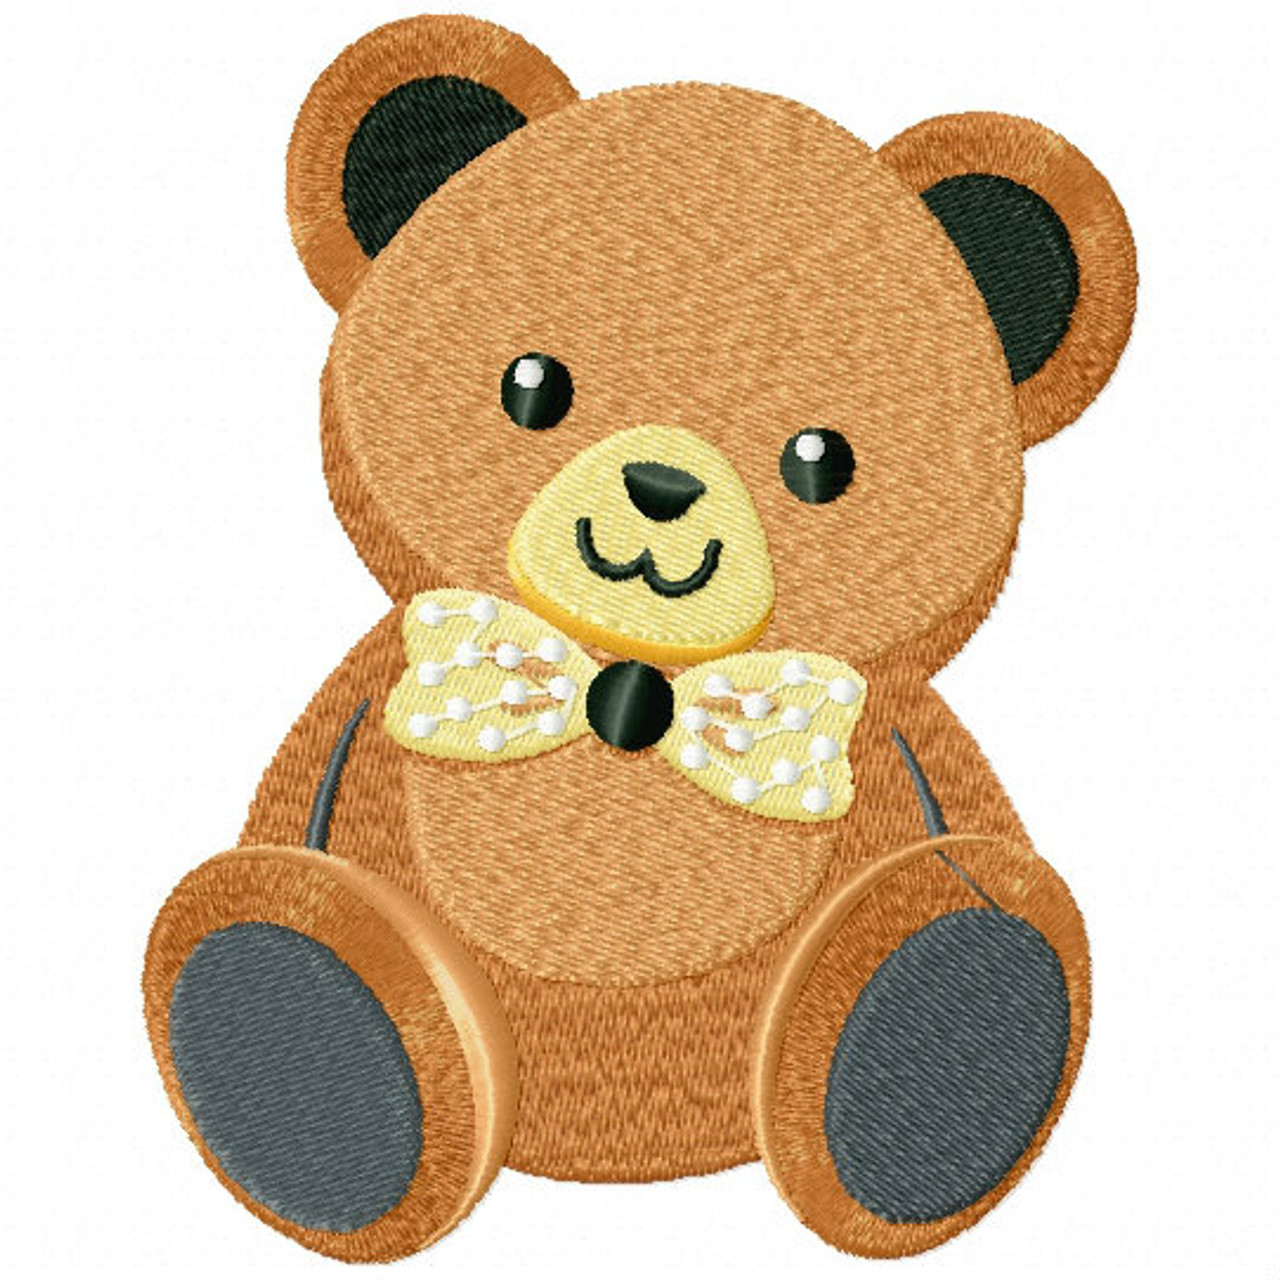 Machine Embroidery Design Stuffed Toy Collection 01